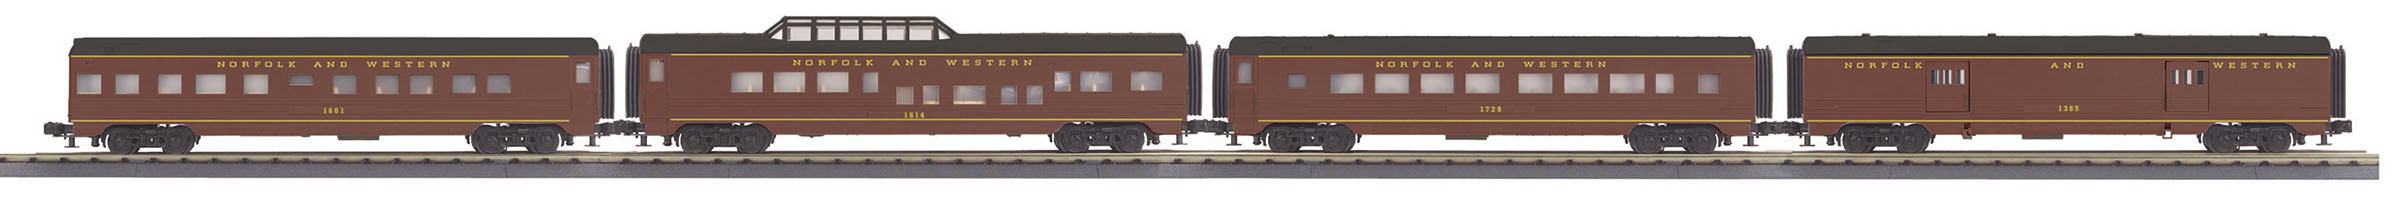 MTH 3068114 O 60' Streamlined 4-Car Passenger Set 3-Rail Ready to Run RailKing Norfolk & Western 1284 507-3068114